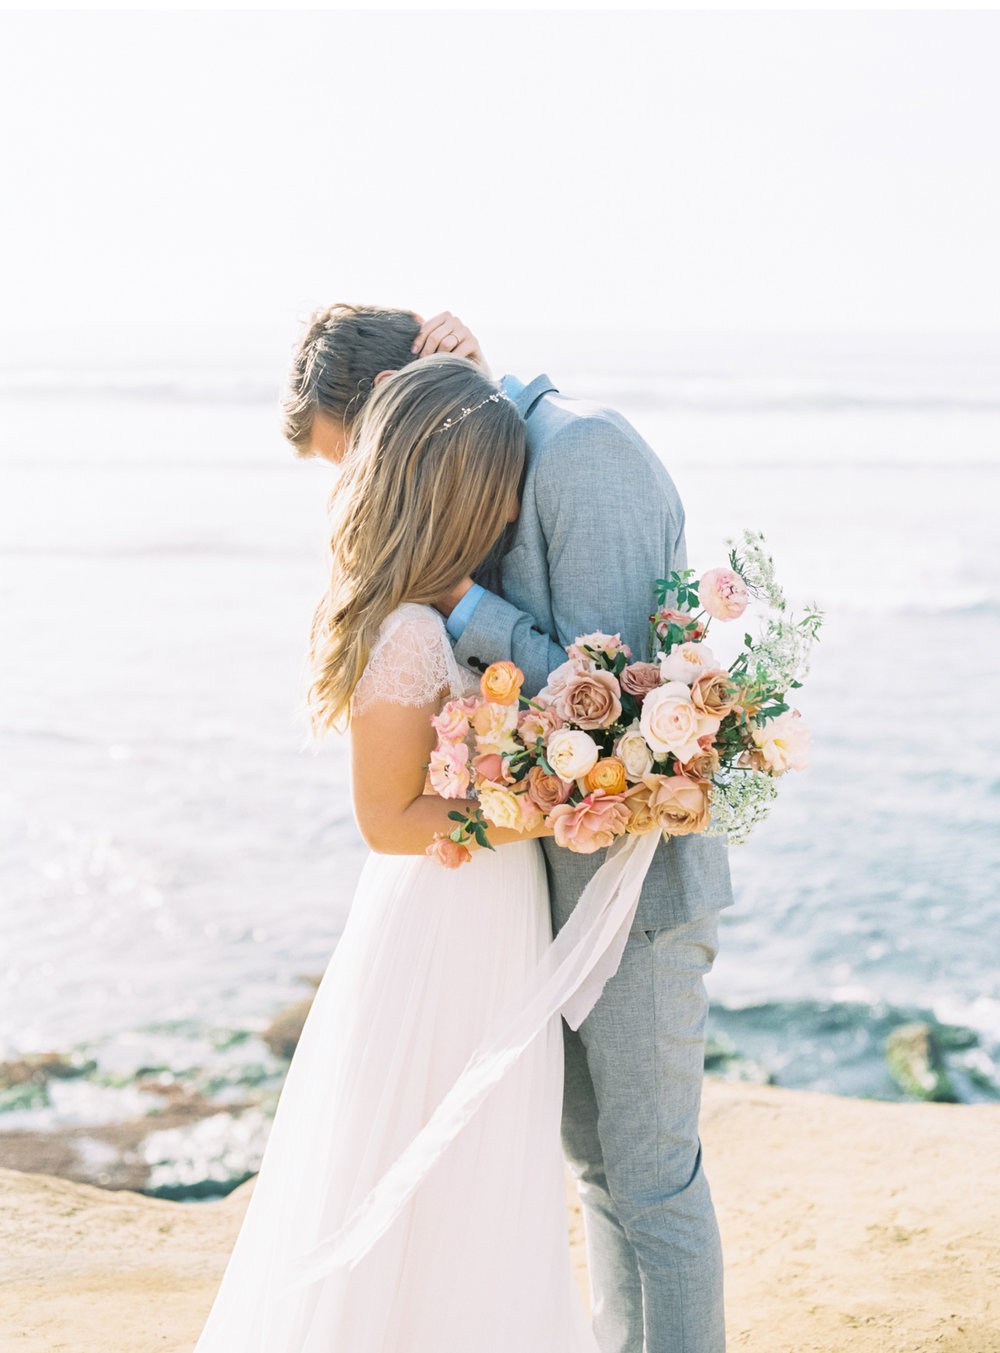 Style-Me-Pretty-California-Beach-Wedding-Natalie-Schutt-Photography_06.jpg